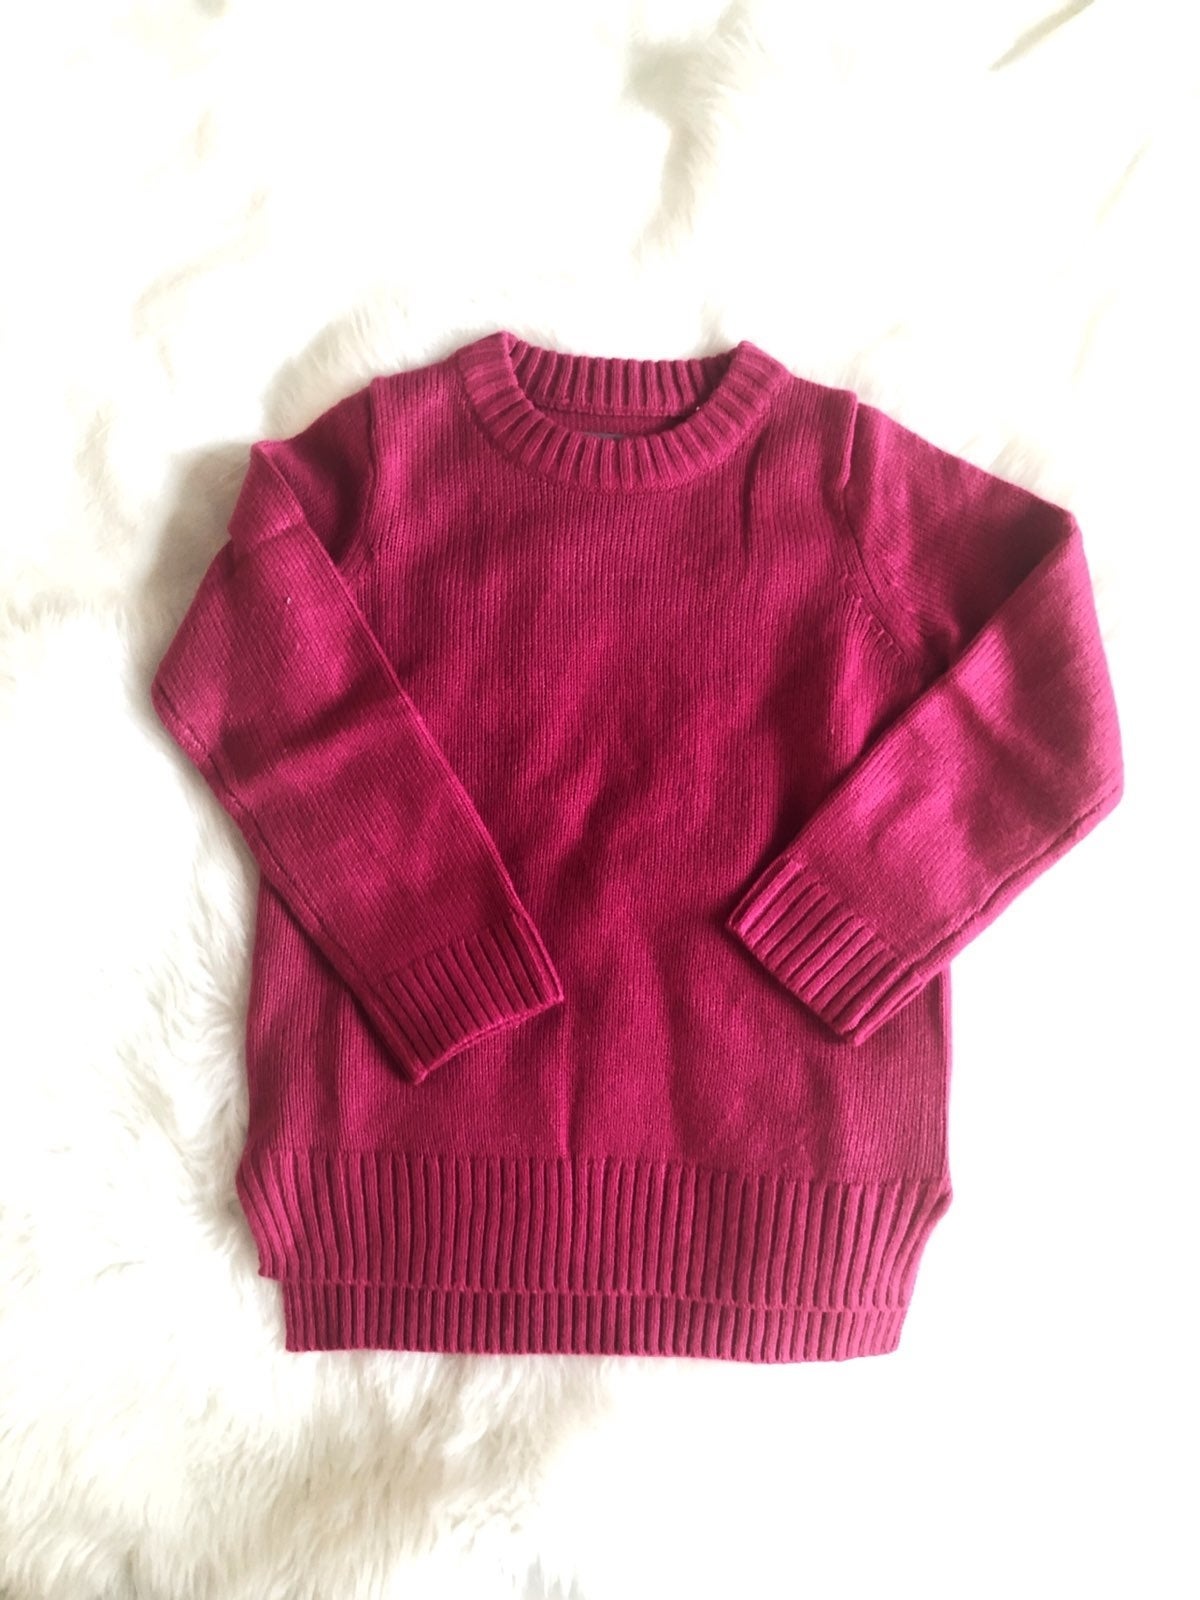 Primary toddler sweater